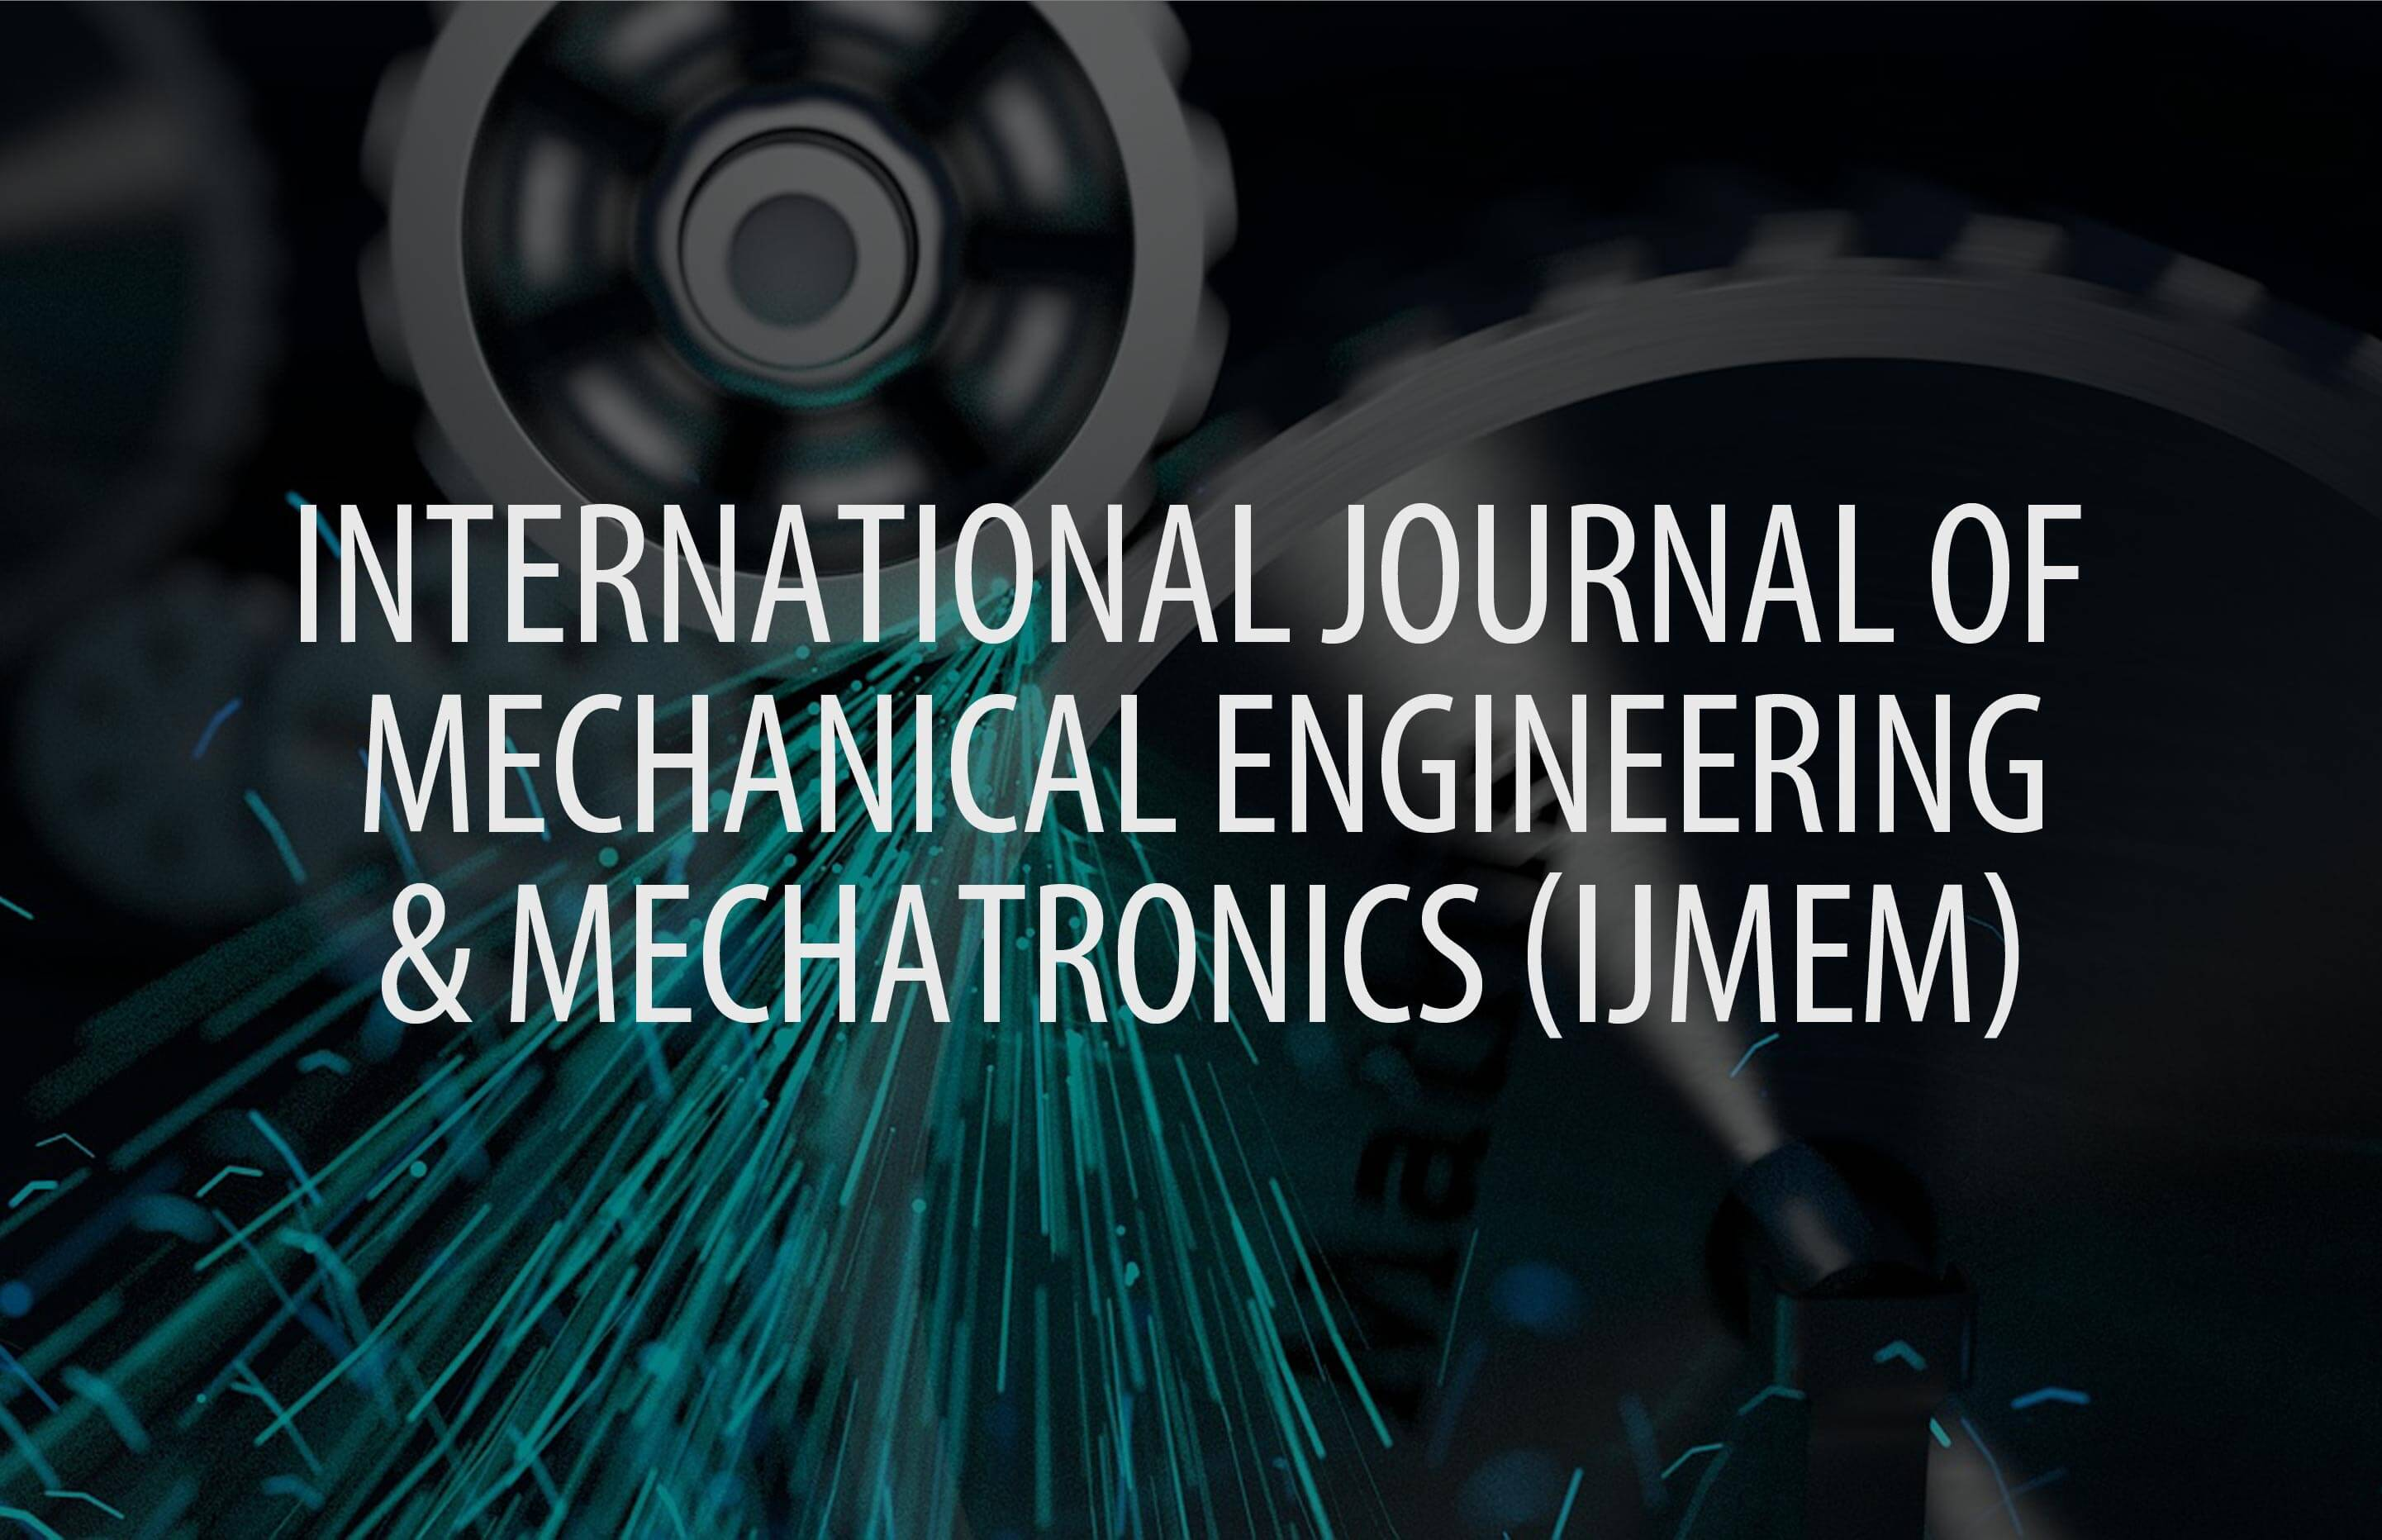 International Journal of Mechanical Engineering and Mechatronics (IJMEM)